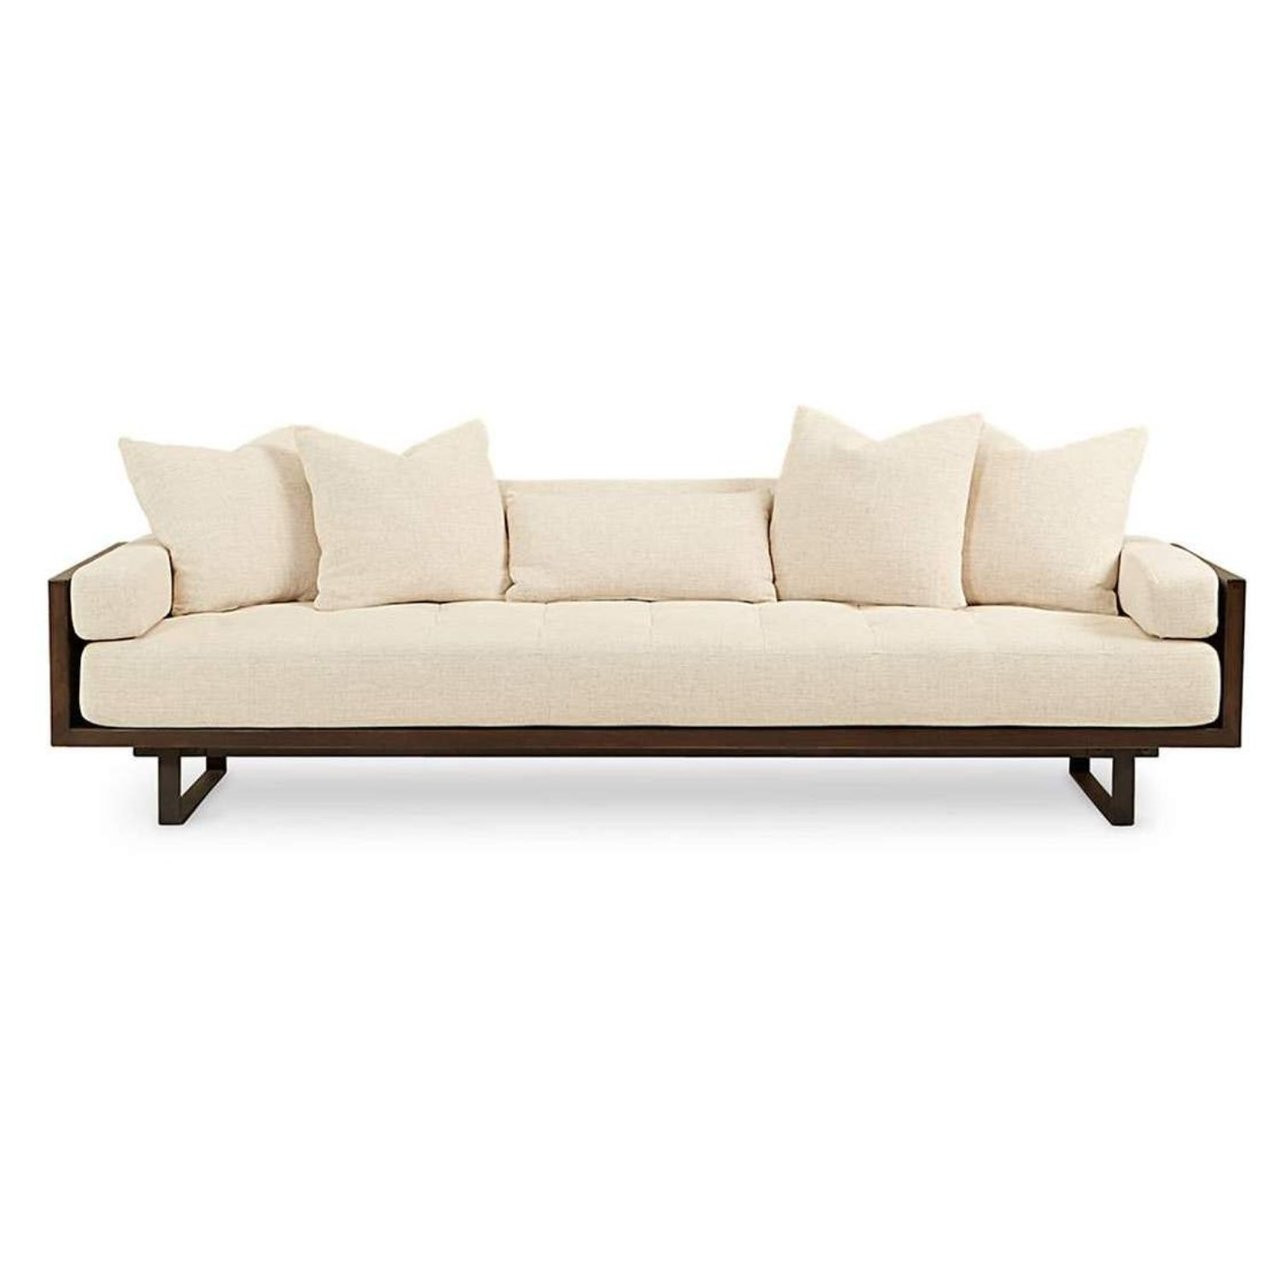 Preston modern tufted sofa 99 zin home